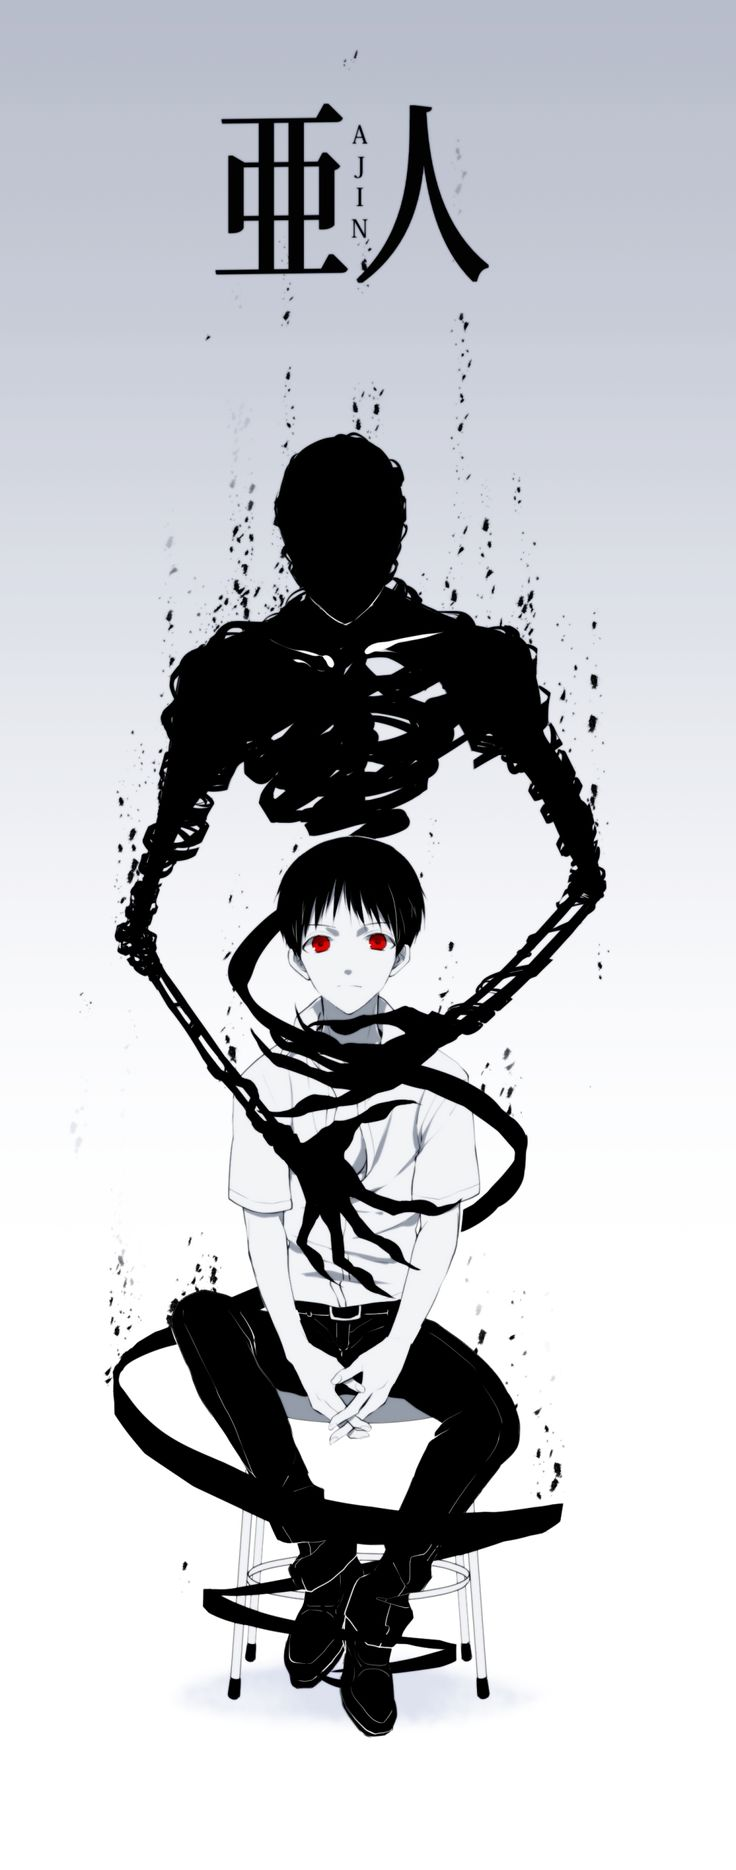 Ajin. Absolutely obsessed with this dark anime show.